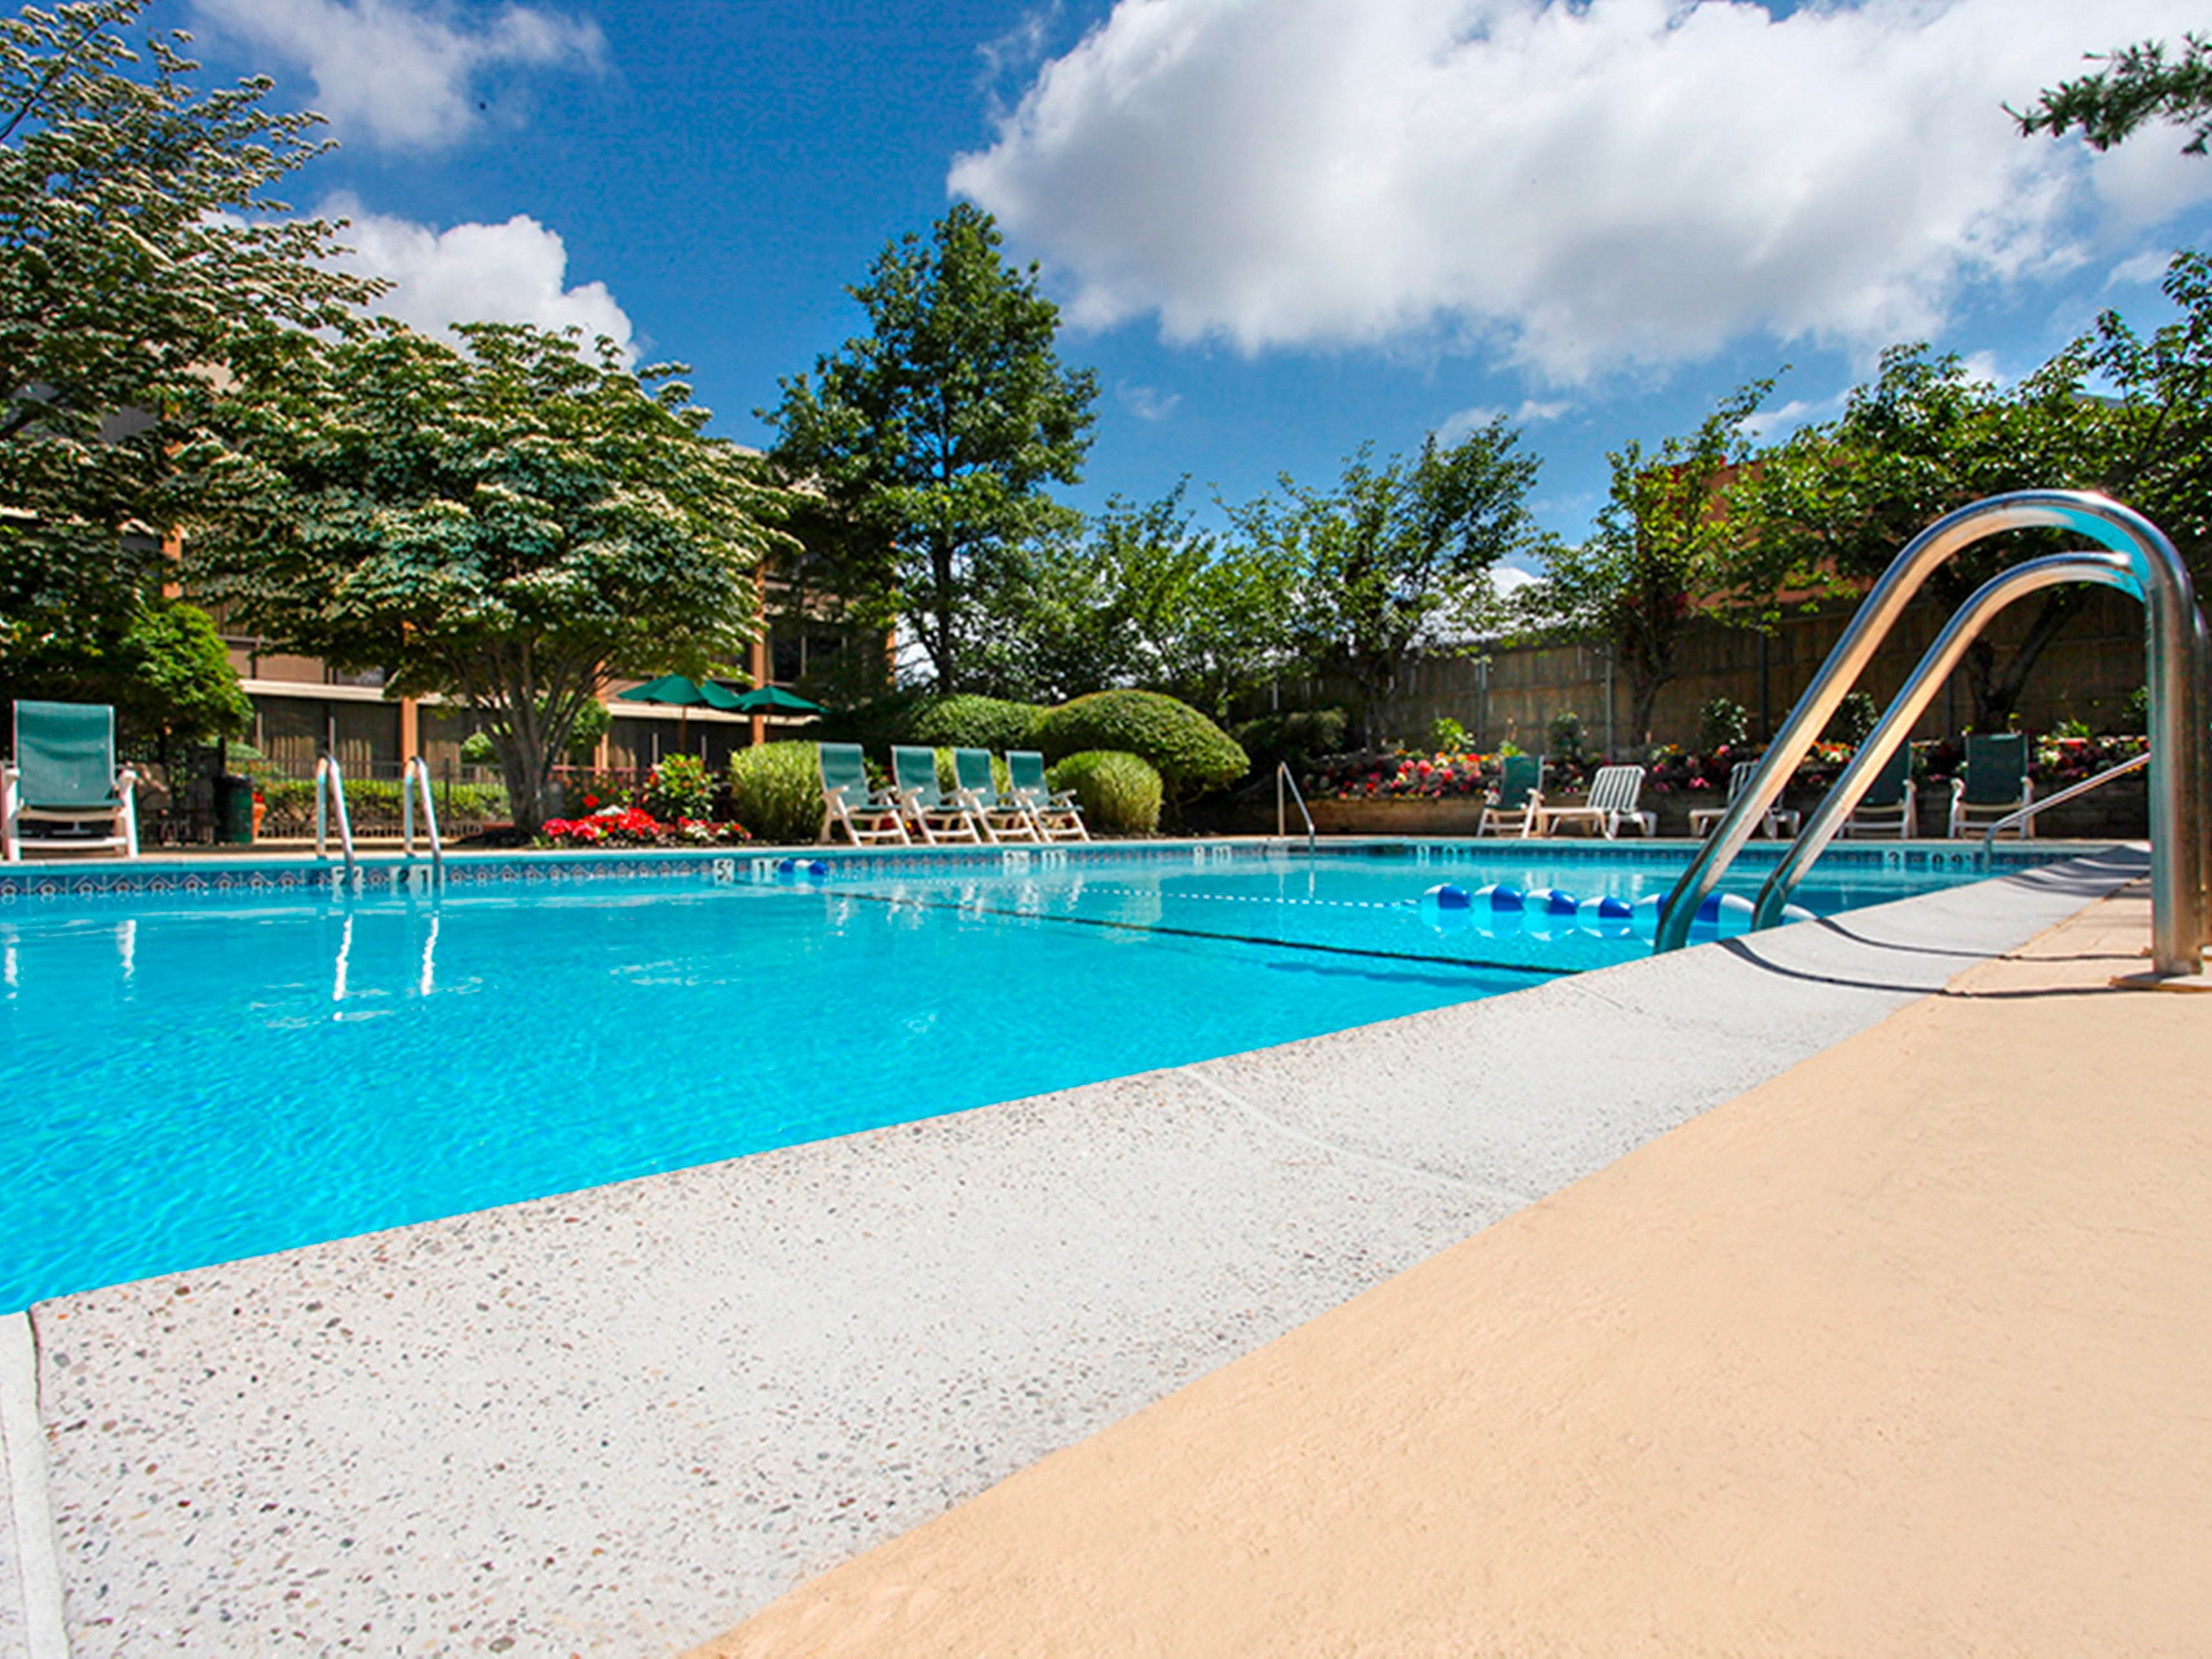 Take a dip in our outdoor swimming pool to cool off